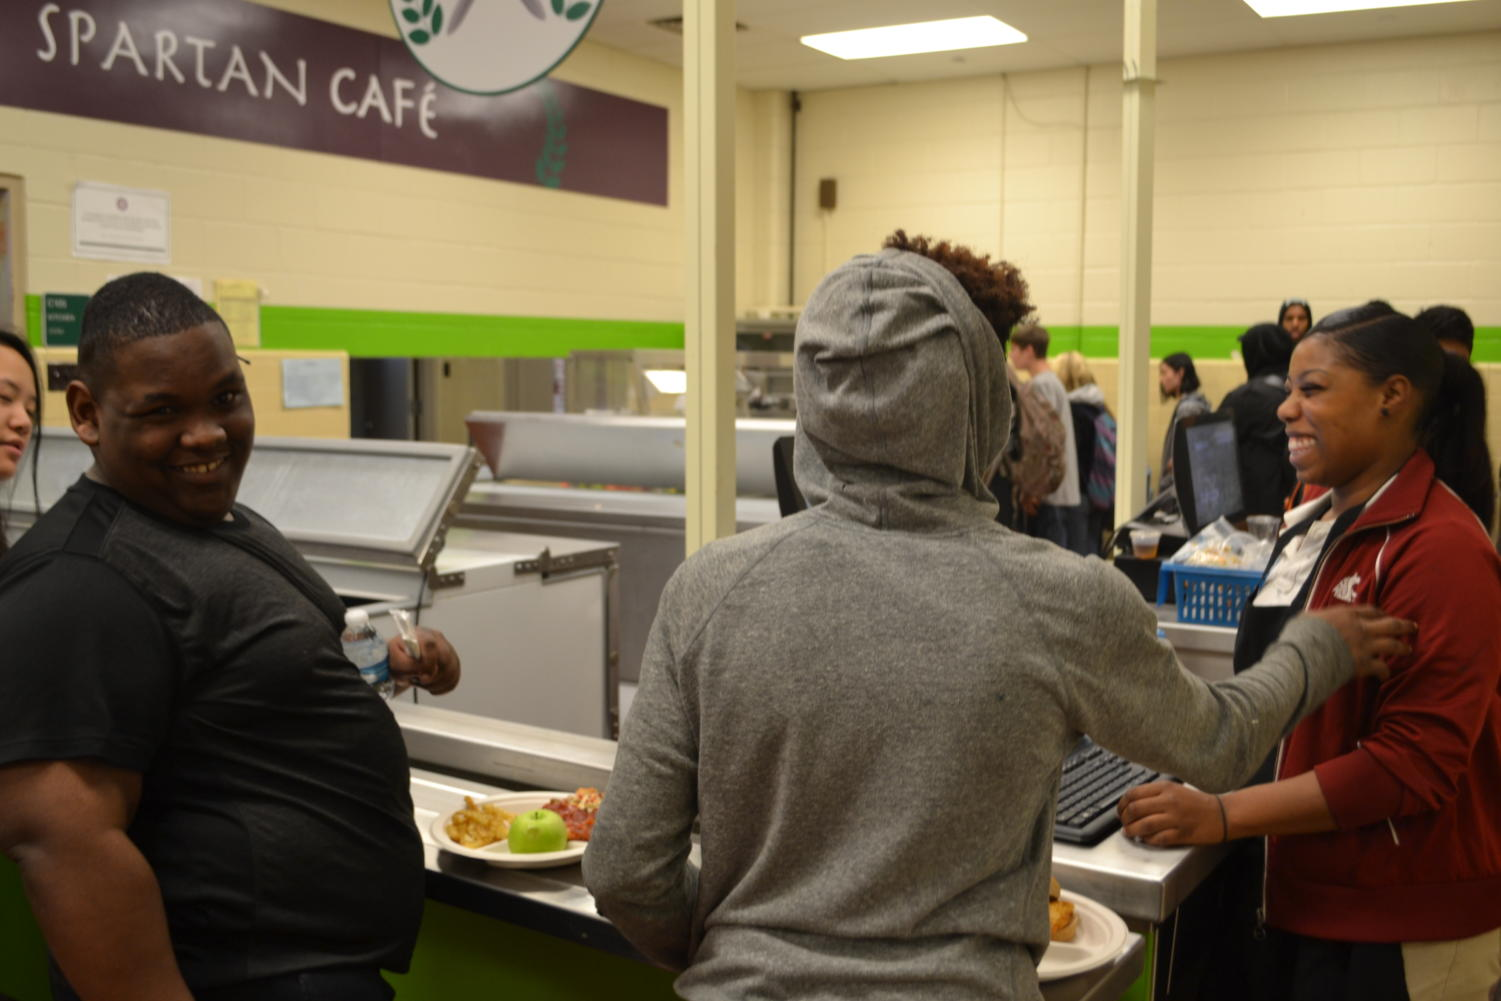 Students laugh and chat with cafeteria staff during C lunch.